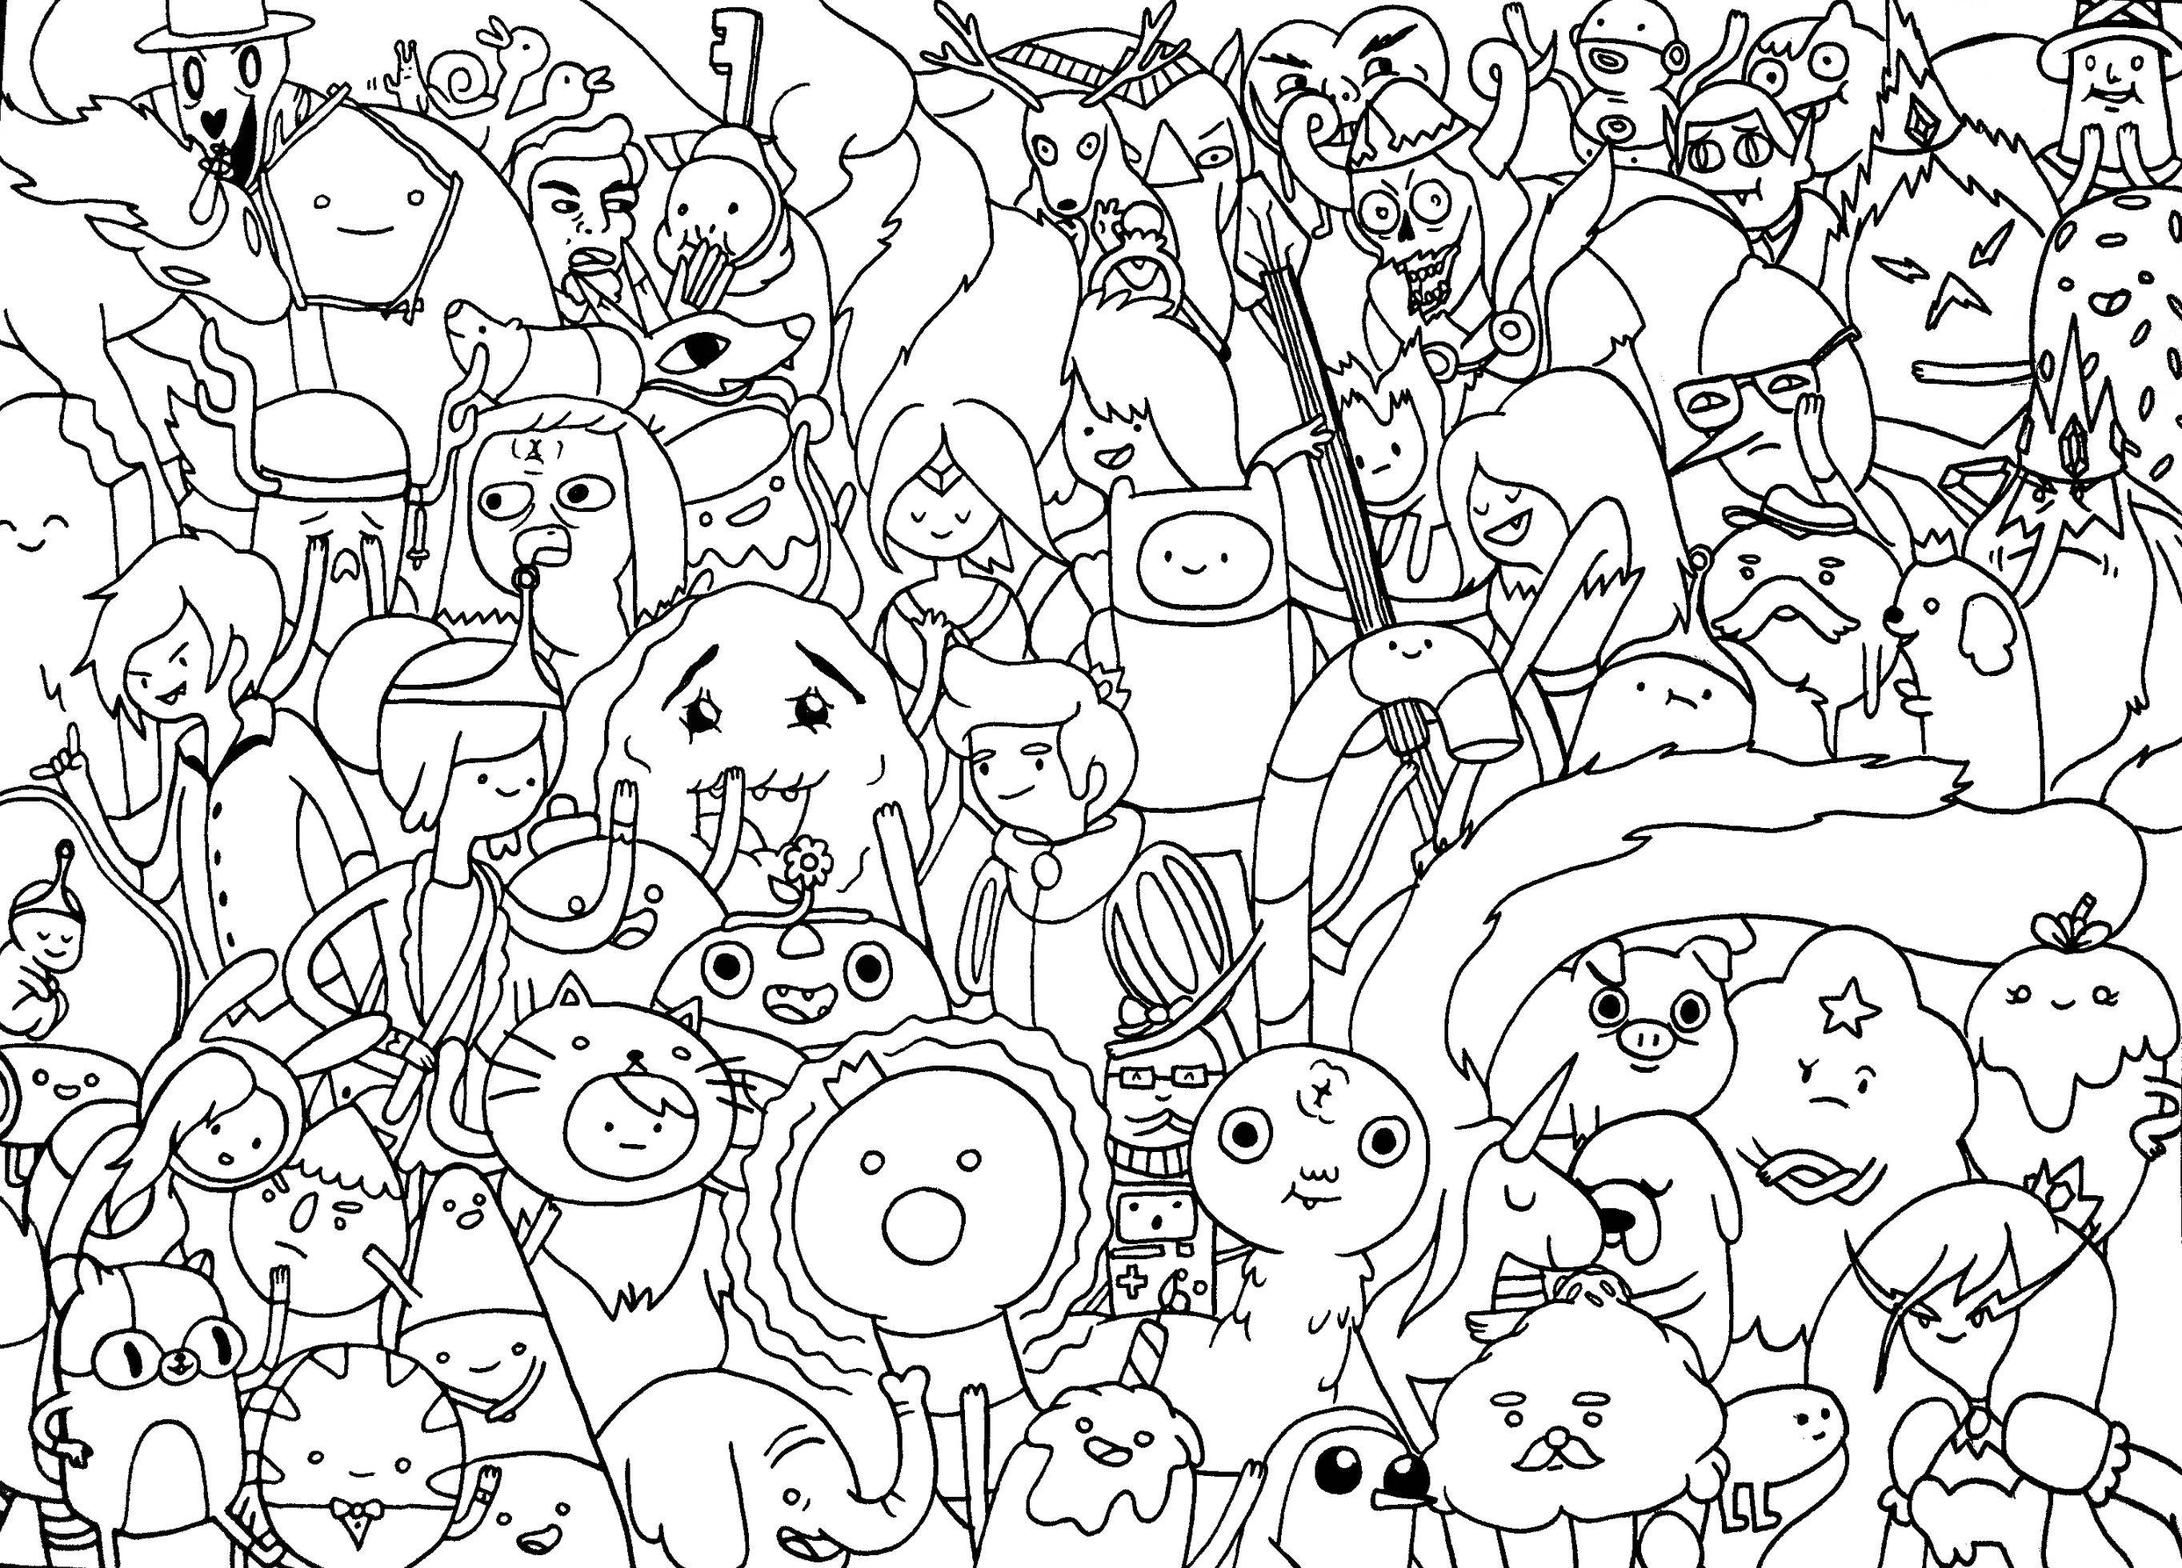 adventure time coloring page - Coloring Paper